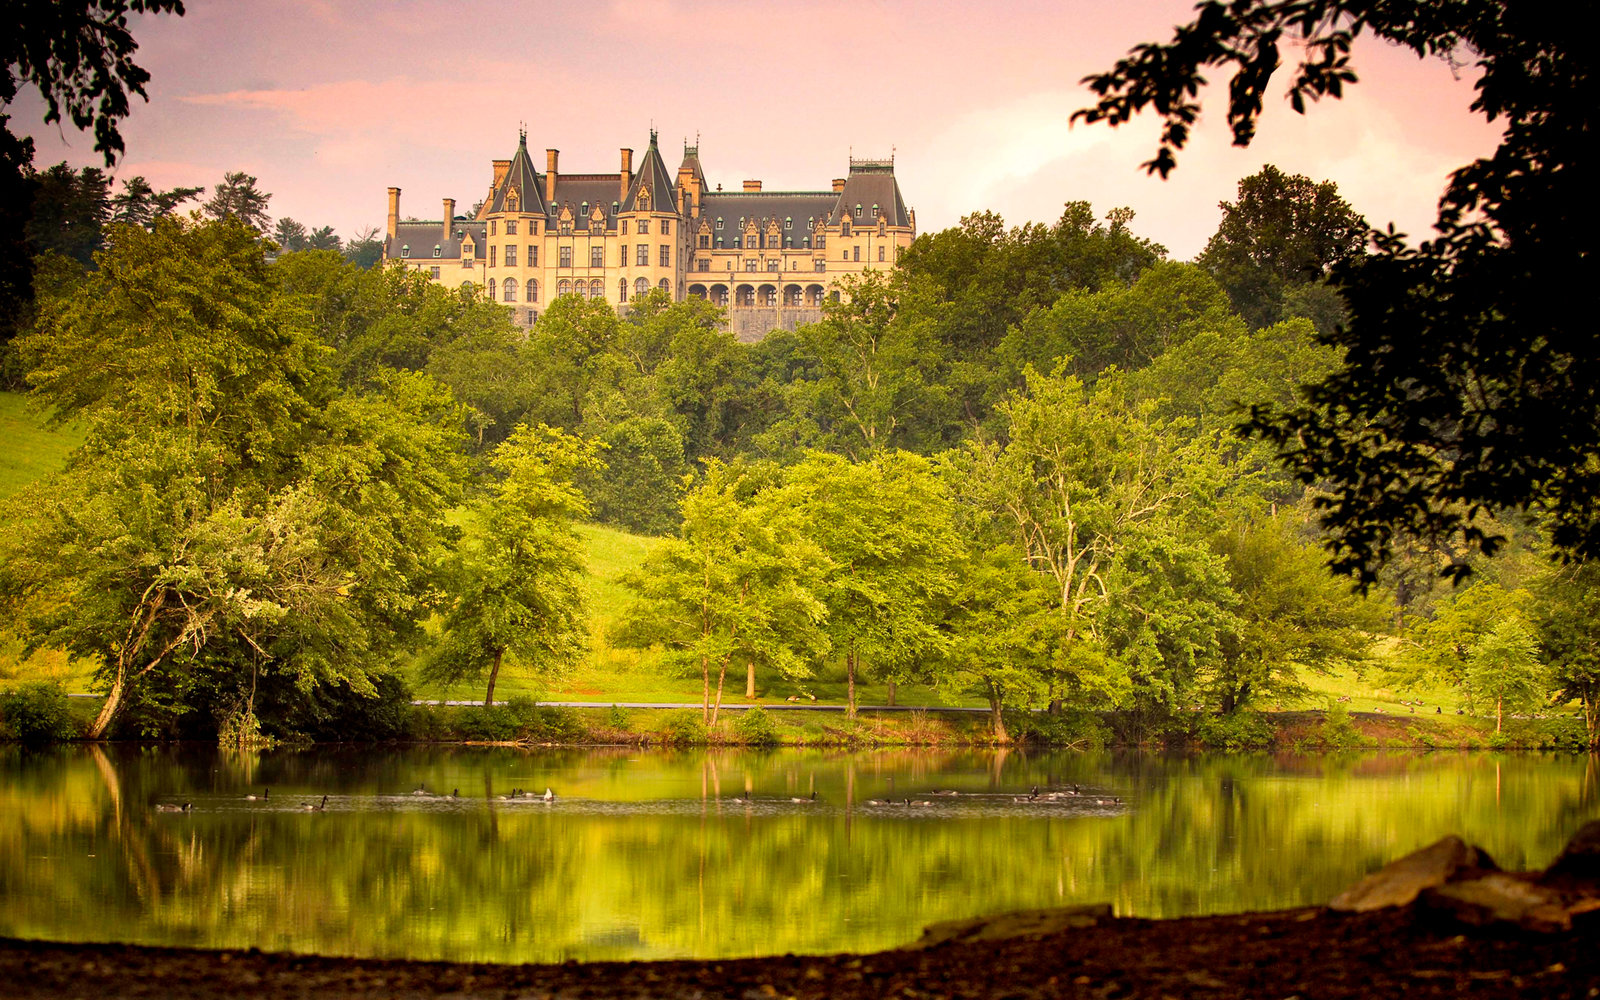 Fall Trees Iphone Wallpaper The History And Charm Of North Carolina S Biltmore Estate